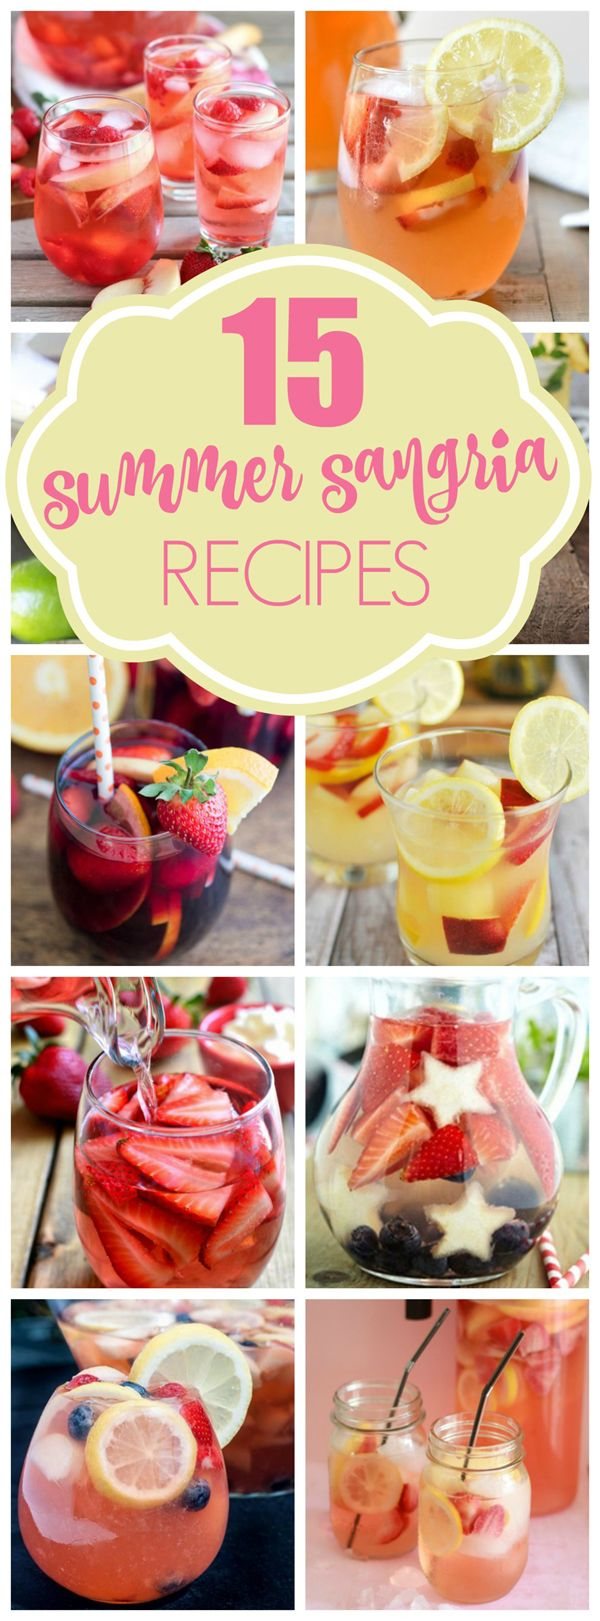 15 Sweet Summer Sangria Recipes - Pretty My Party #alcohol #bbq #drinks